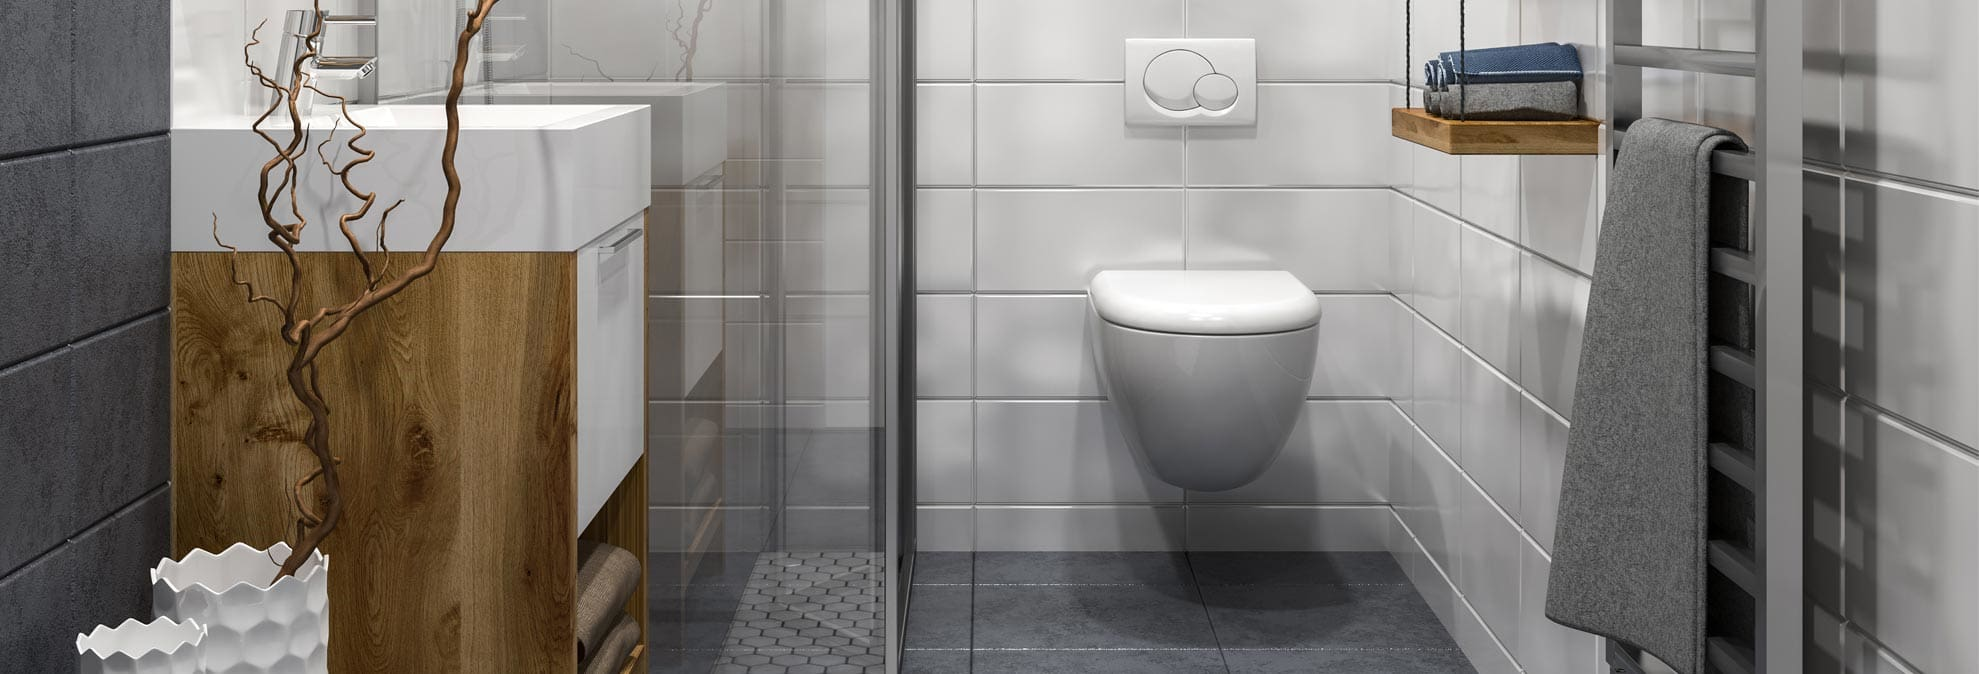 10 Inch Rough In Toilet Canada The Pros And Cons Of Wall Mounted Toilets Consumer Reports